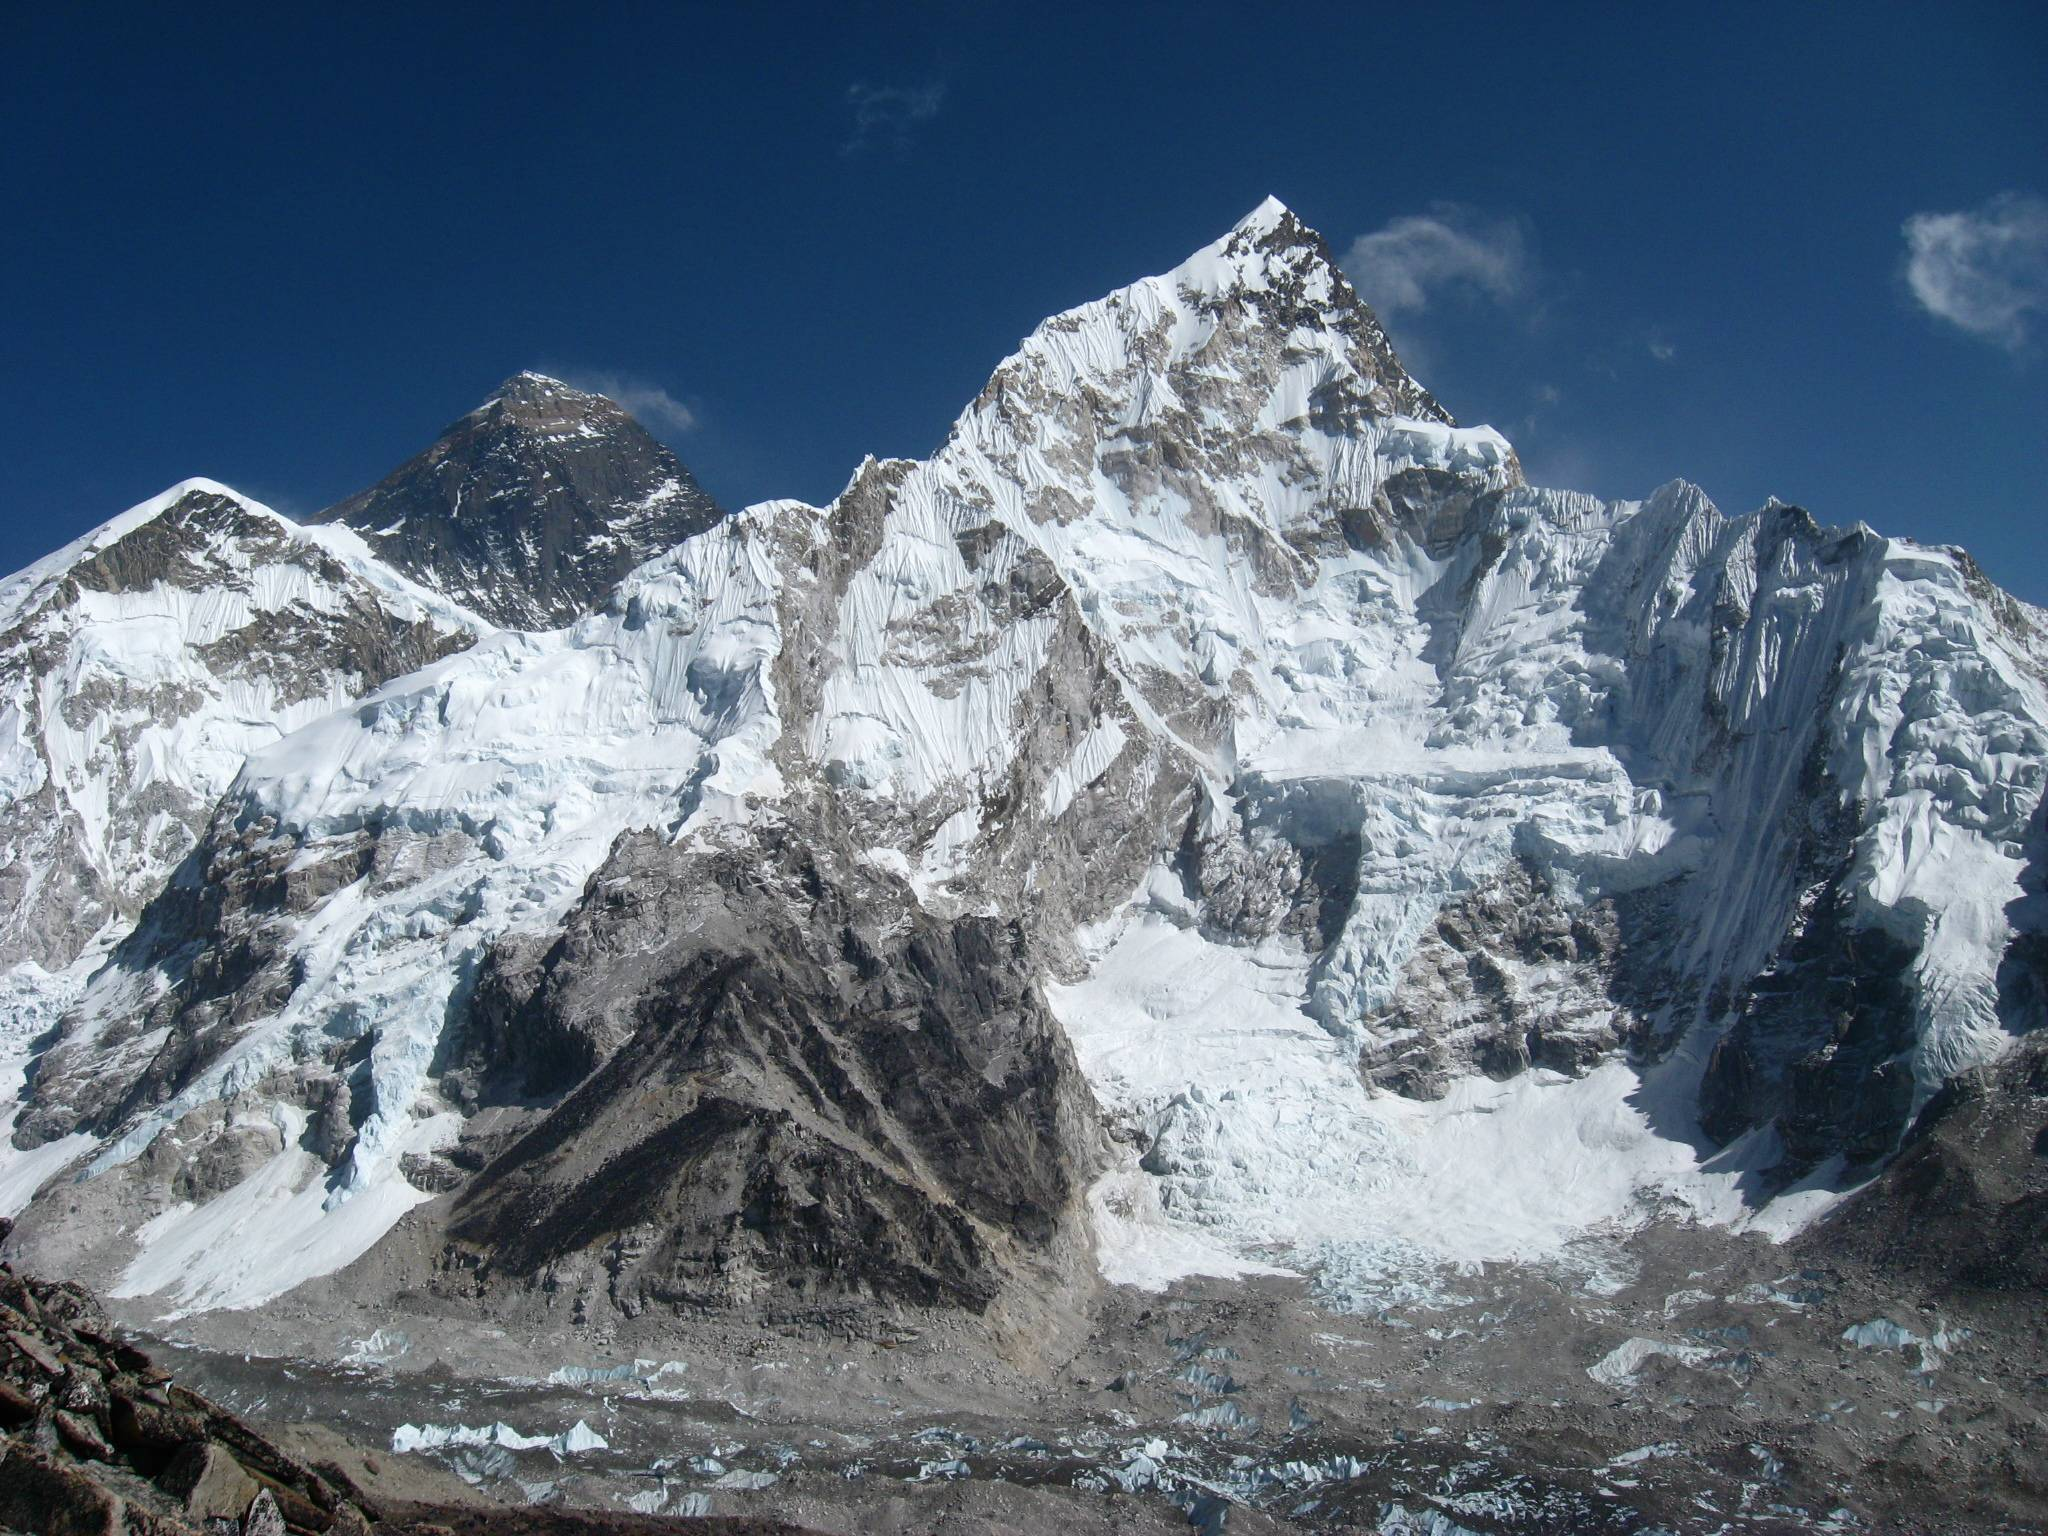 1 Mount Everest + nice wallpapers